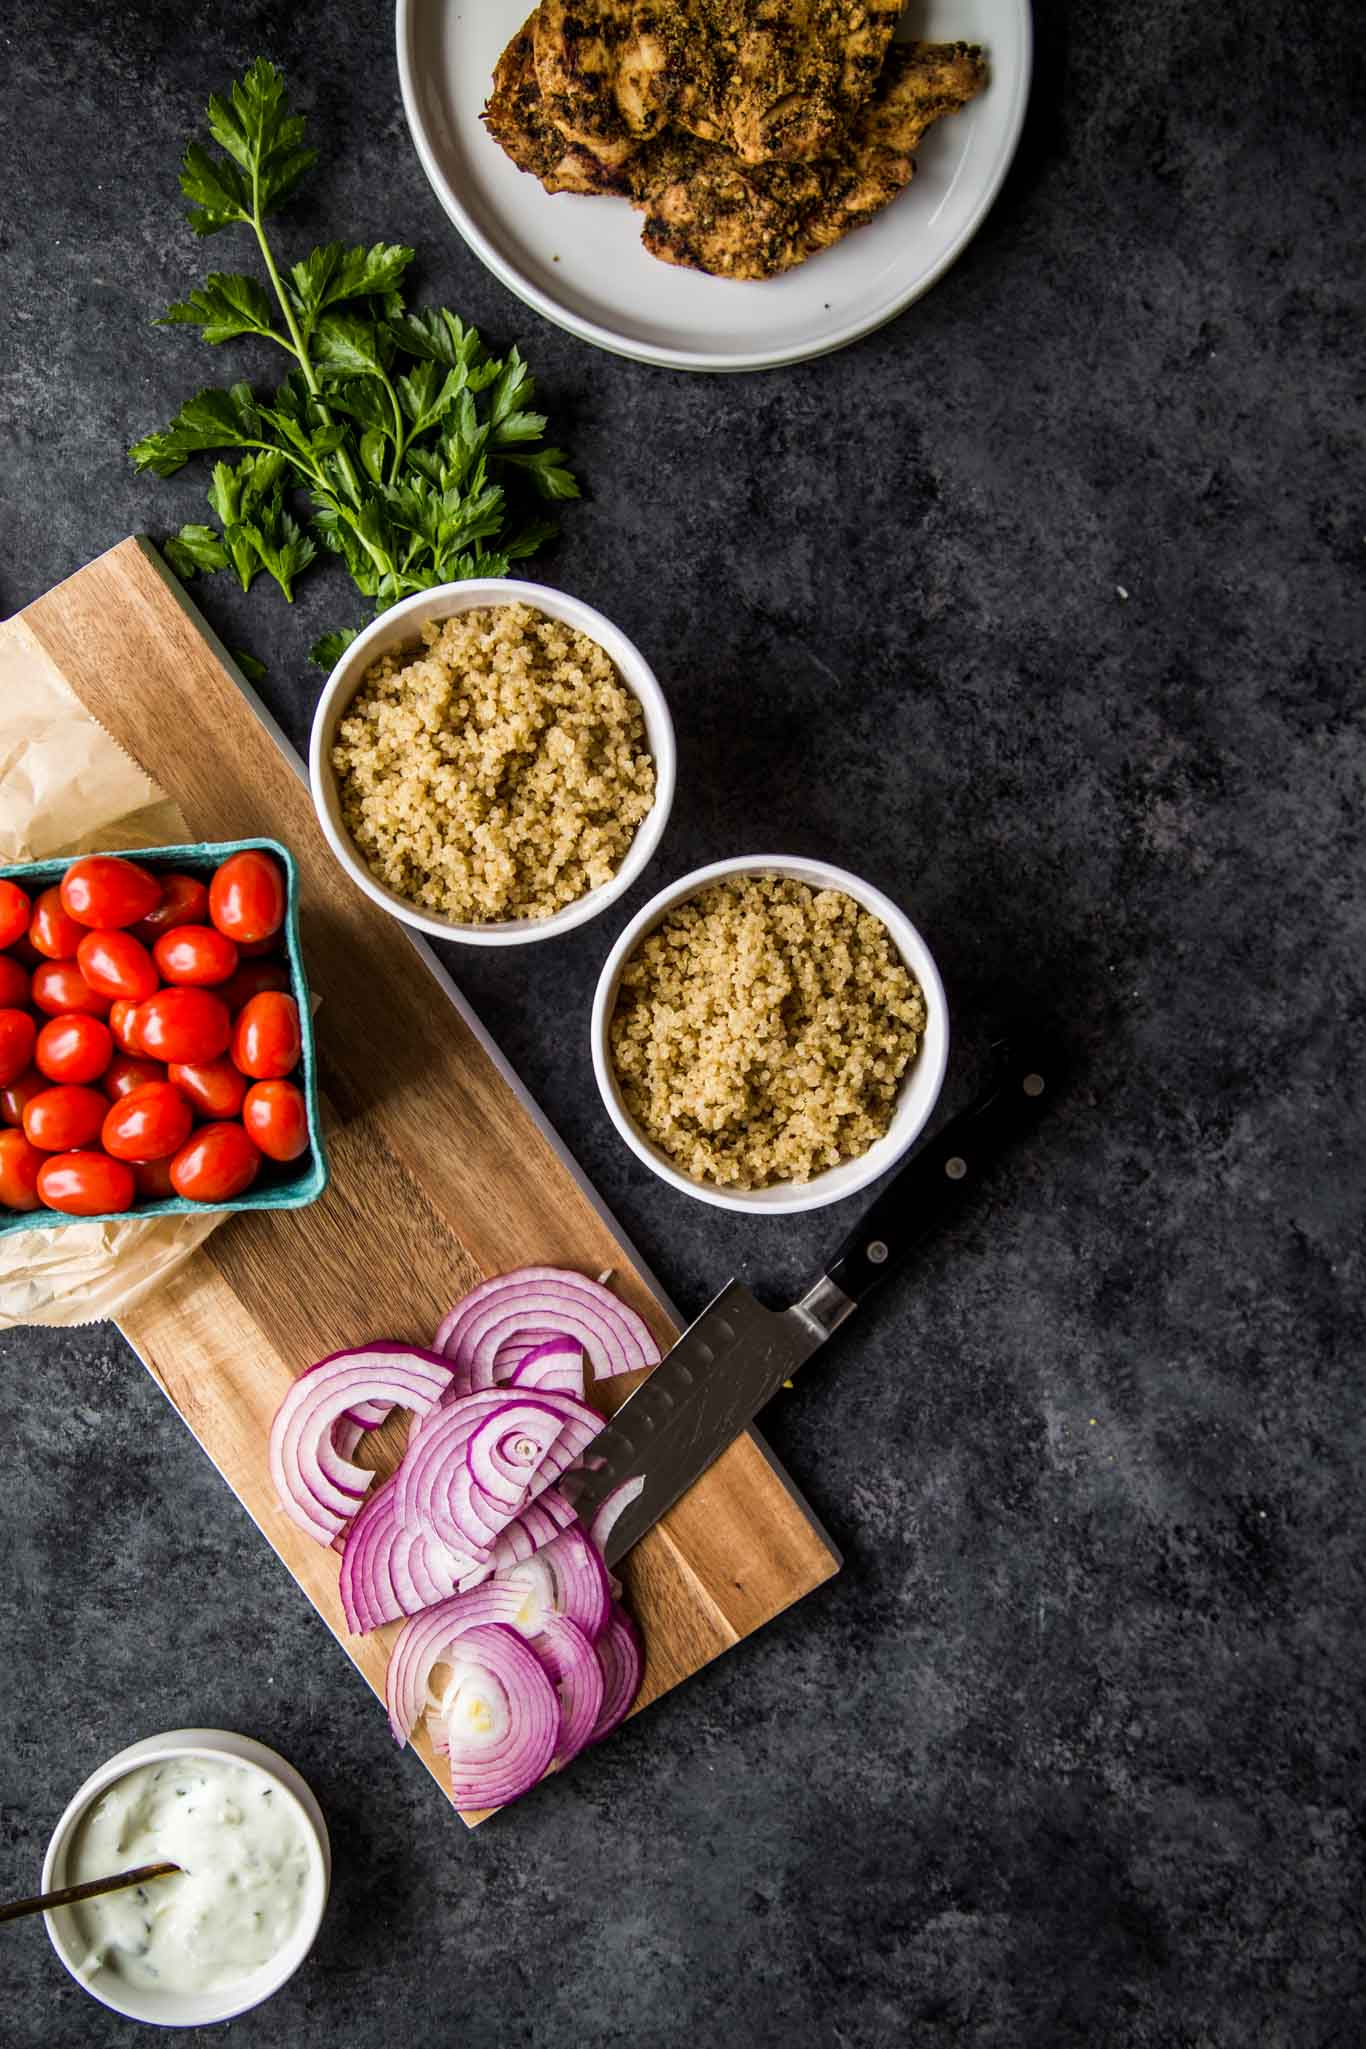 Ingredients for Chicken Gyro Quinoa Bowls